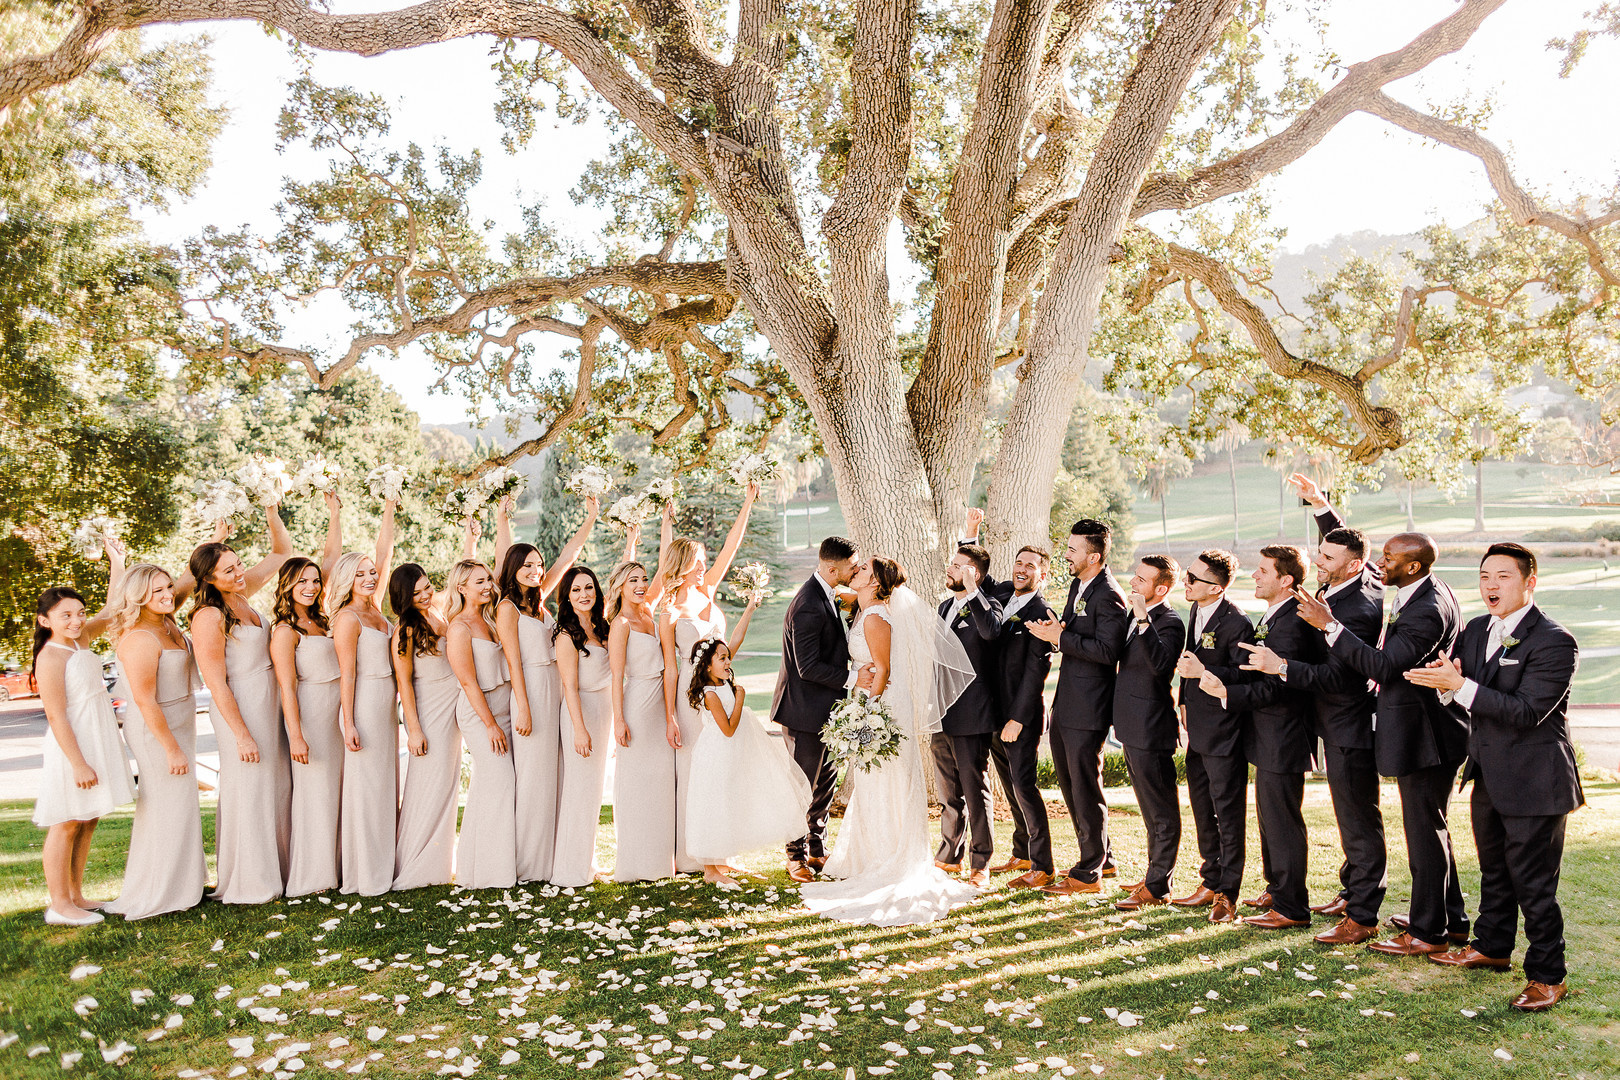 Wedding Inspiration: A Glittering Garden Party in the East Bay